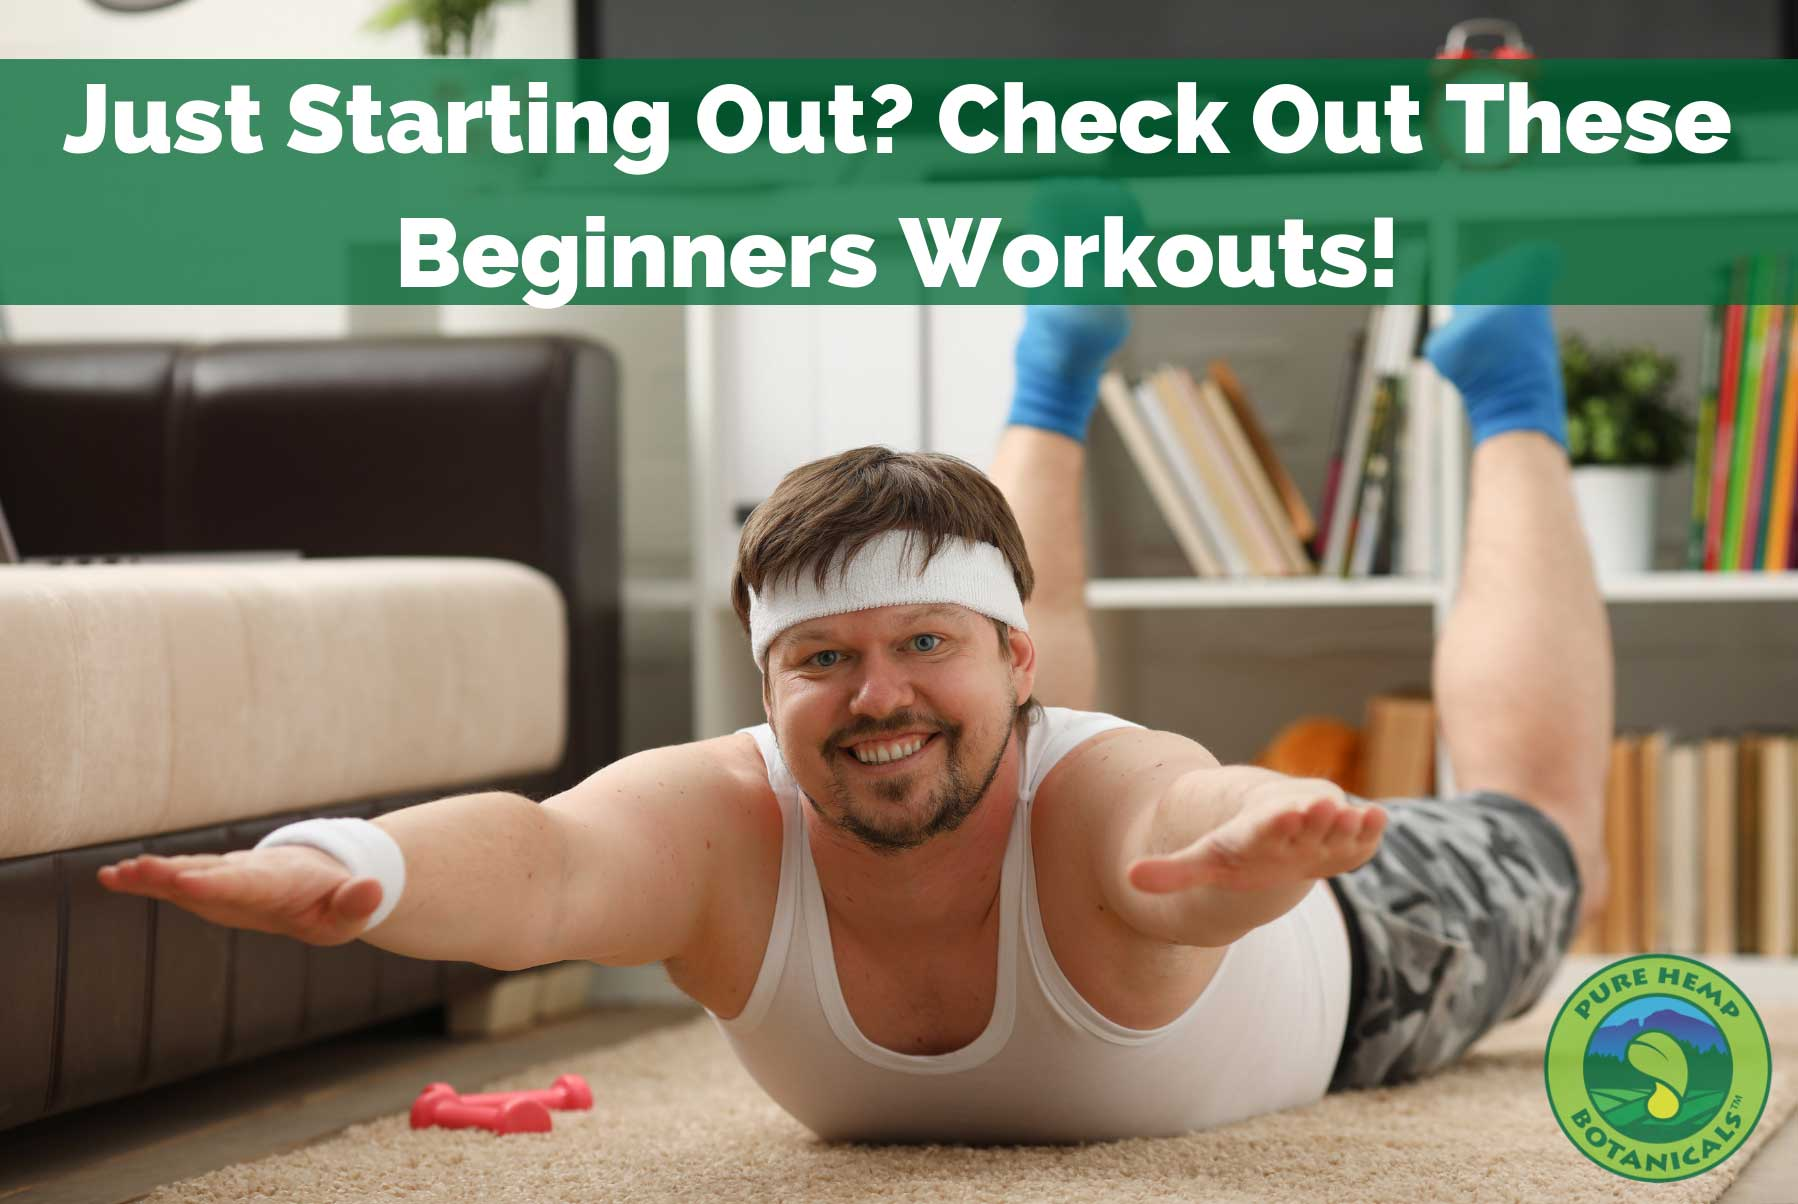 Just Starting Out? Check Out These Beginners Workouts!